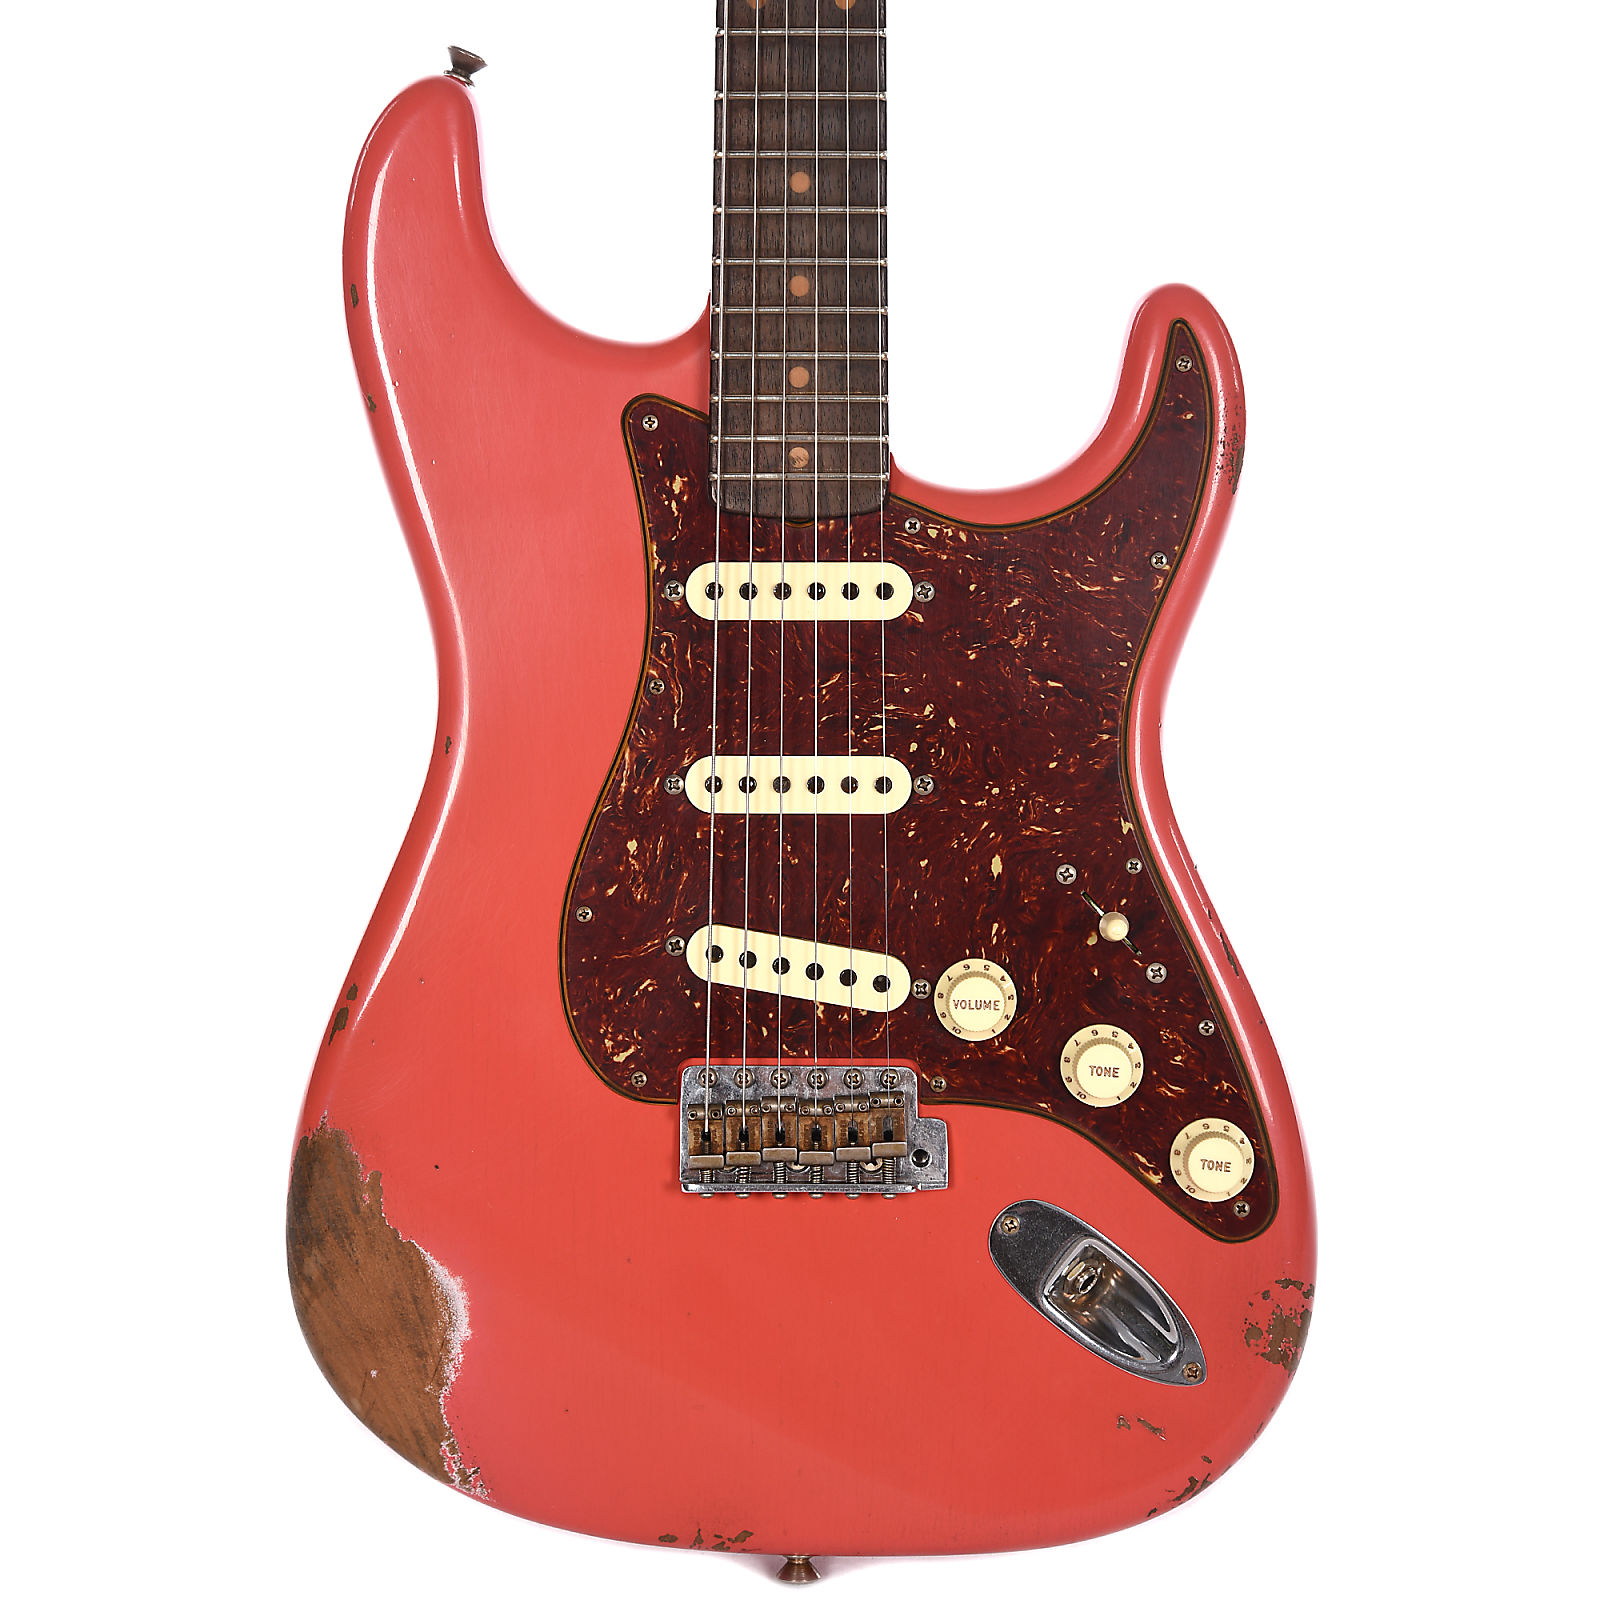 Fender Custom Shop 2018 Limited 1960 Roasted Stratocaster Heavy Relic Faded Aged Fiesta Red W Ancho Poblanos